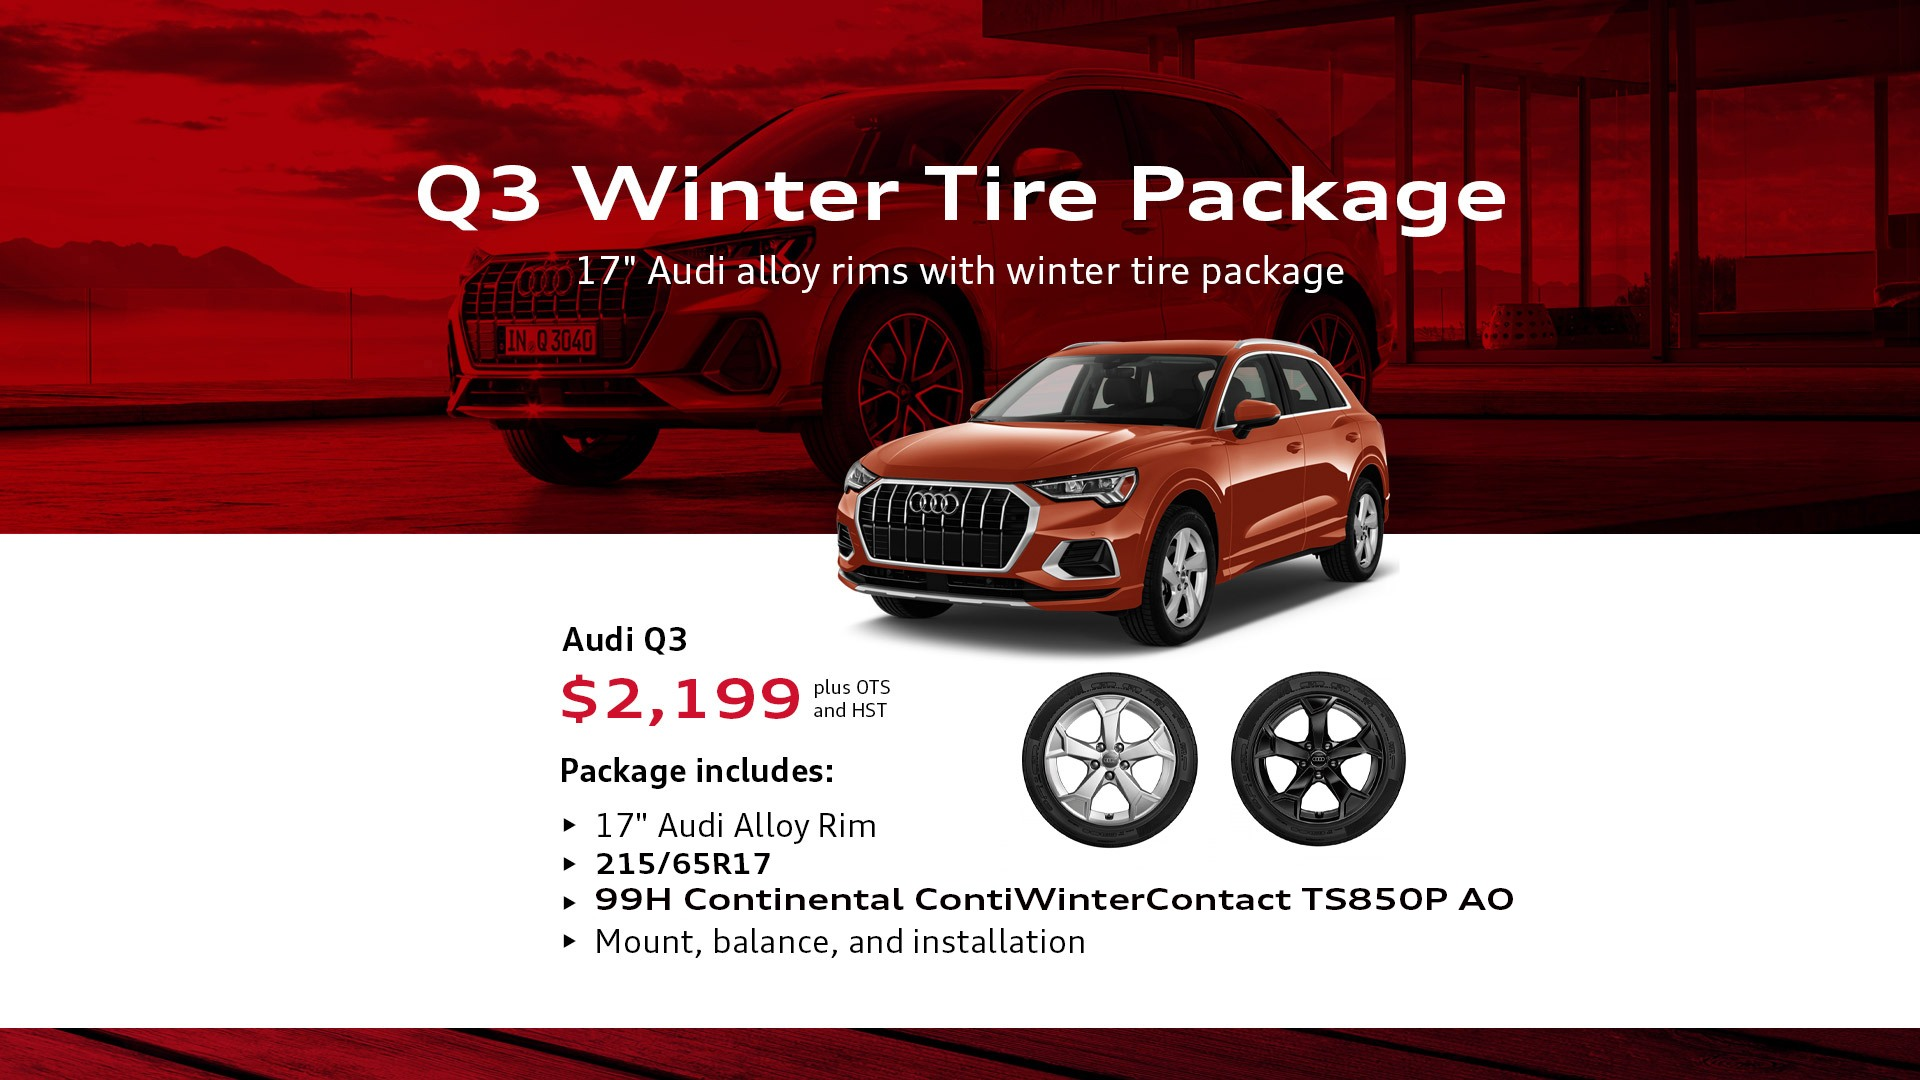 Q3 winter tire package